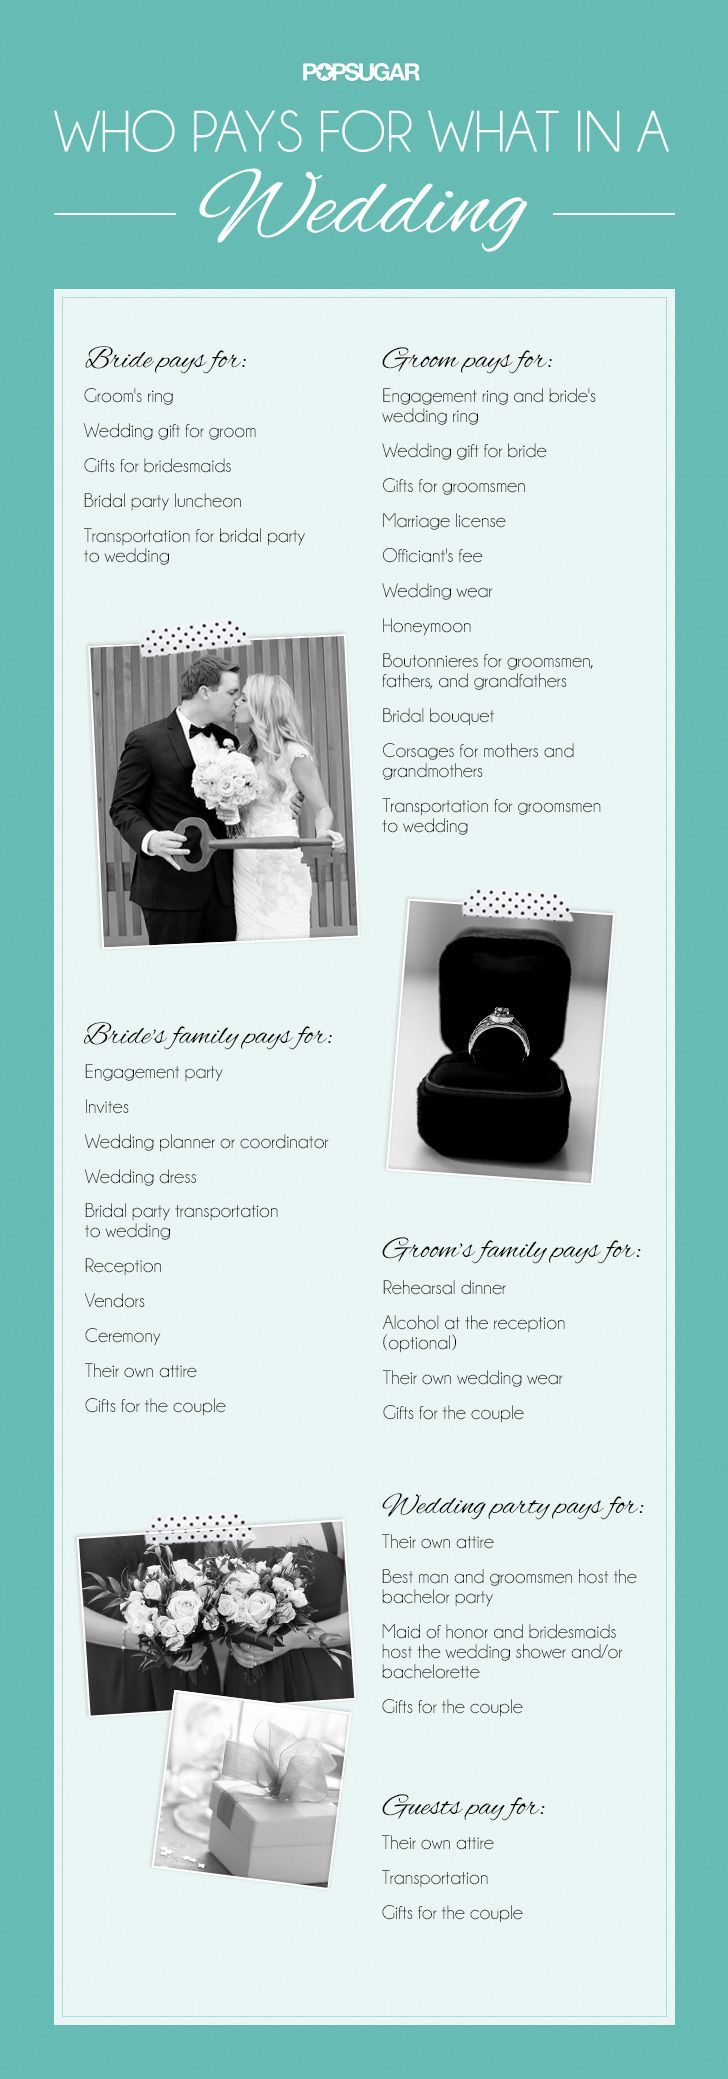 Keeping it traditional This can be handy if you don know or haven't been in a wedding before... Guide to who should pay for what in a wedding! (No one in a wedding party should assume the couple is paying for their attire, and yes you do still get the couple a gift. cough! cough!)